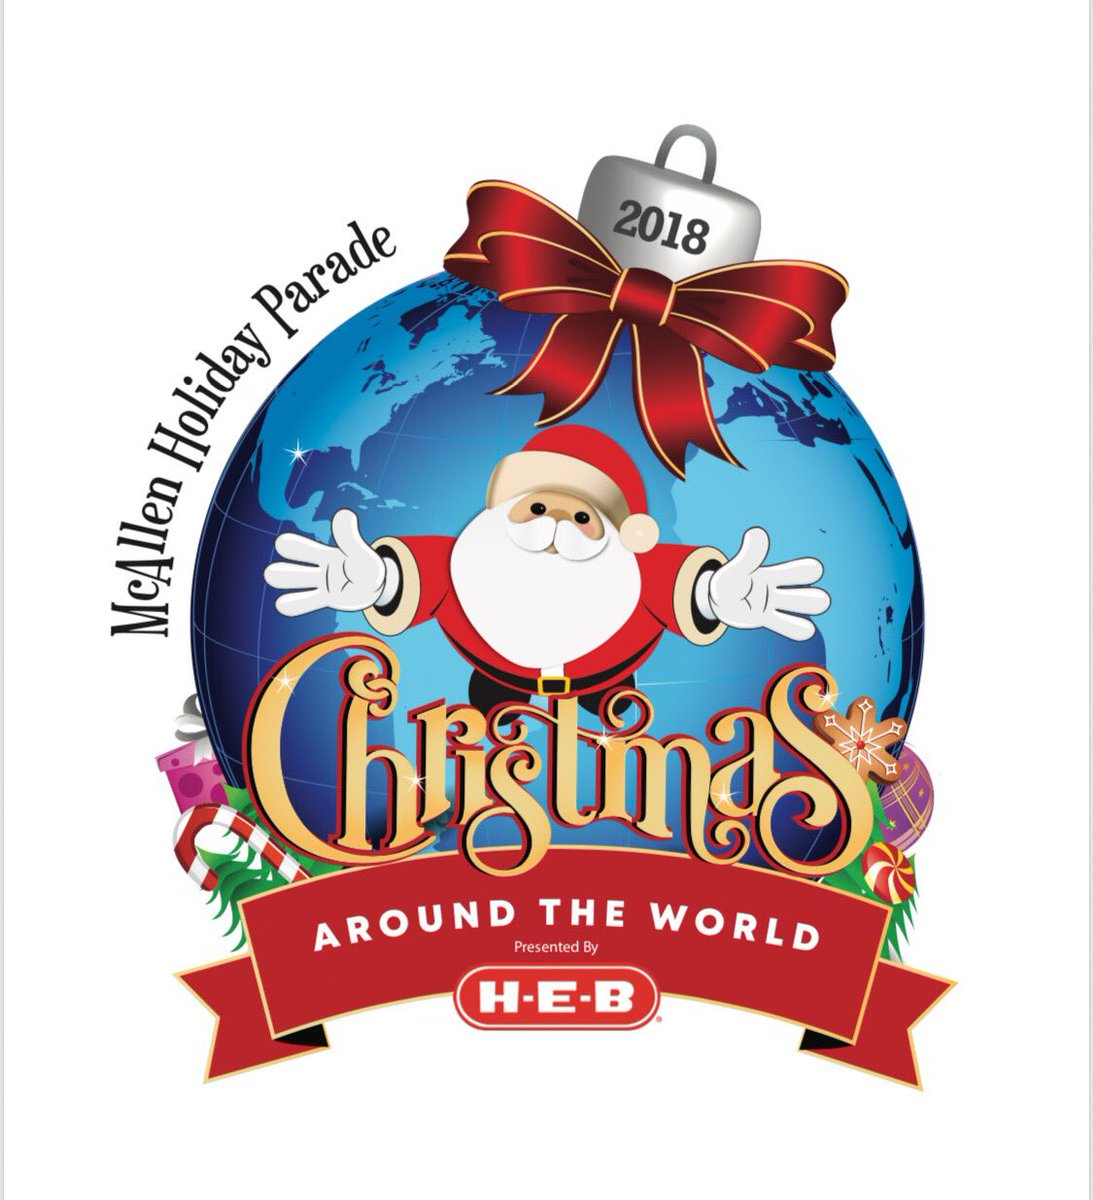 1143 am 11 jul 2018 - Christmas Around The World Decorations For A Party